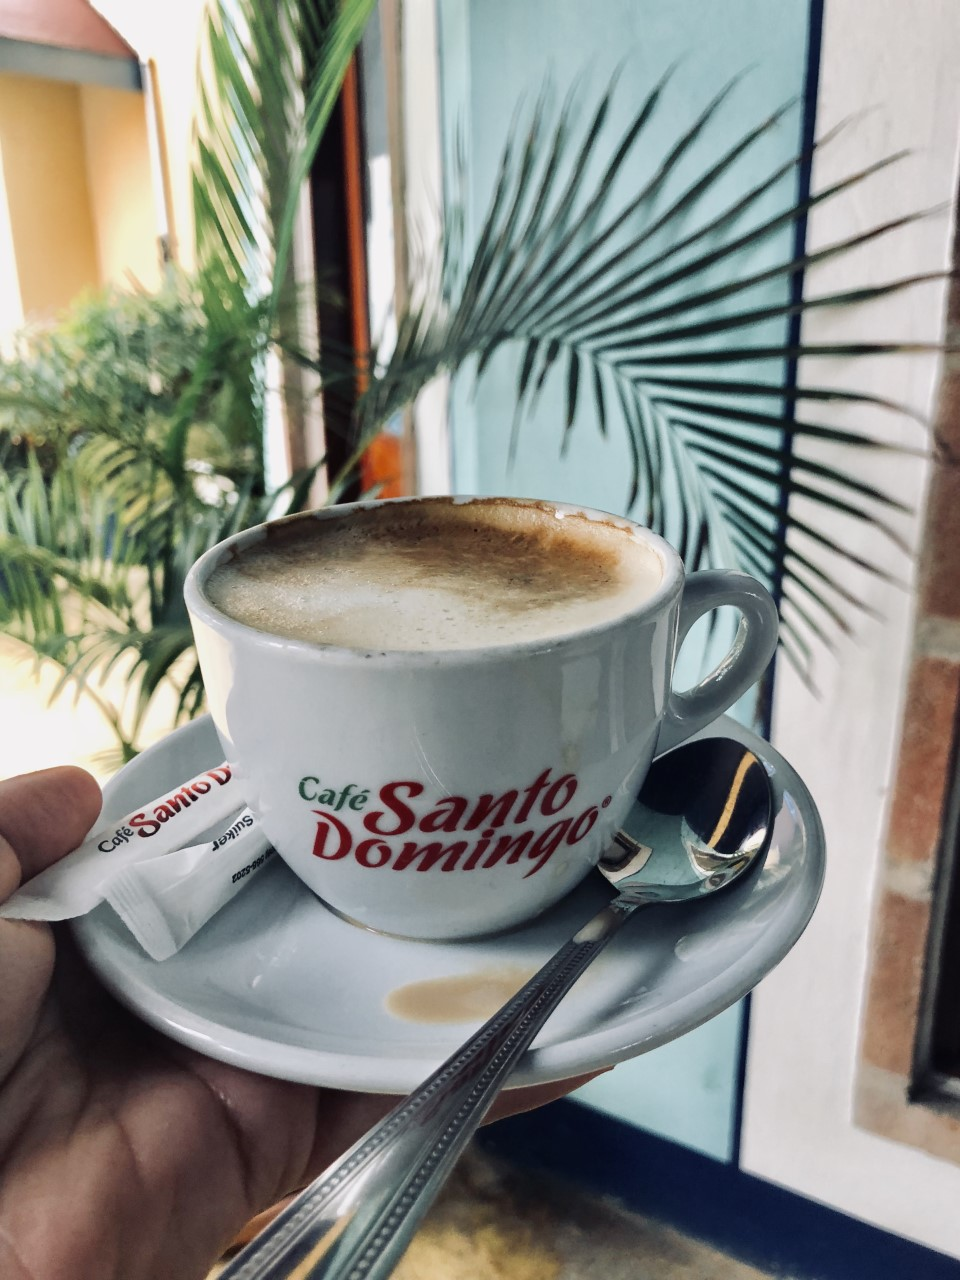 BOULAN-GERIEFRANCAISE - Local french bakery in the heart of Las Terranas town, filled with delicious pastries, beignets, fresh pain au chocolate and ofcourse, local Dominican coffee.Easy walking distance to the shopping plaza and galleries.